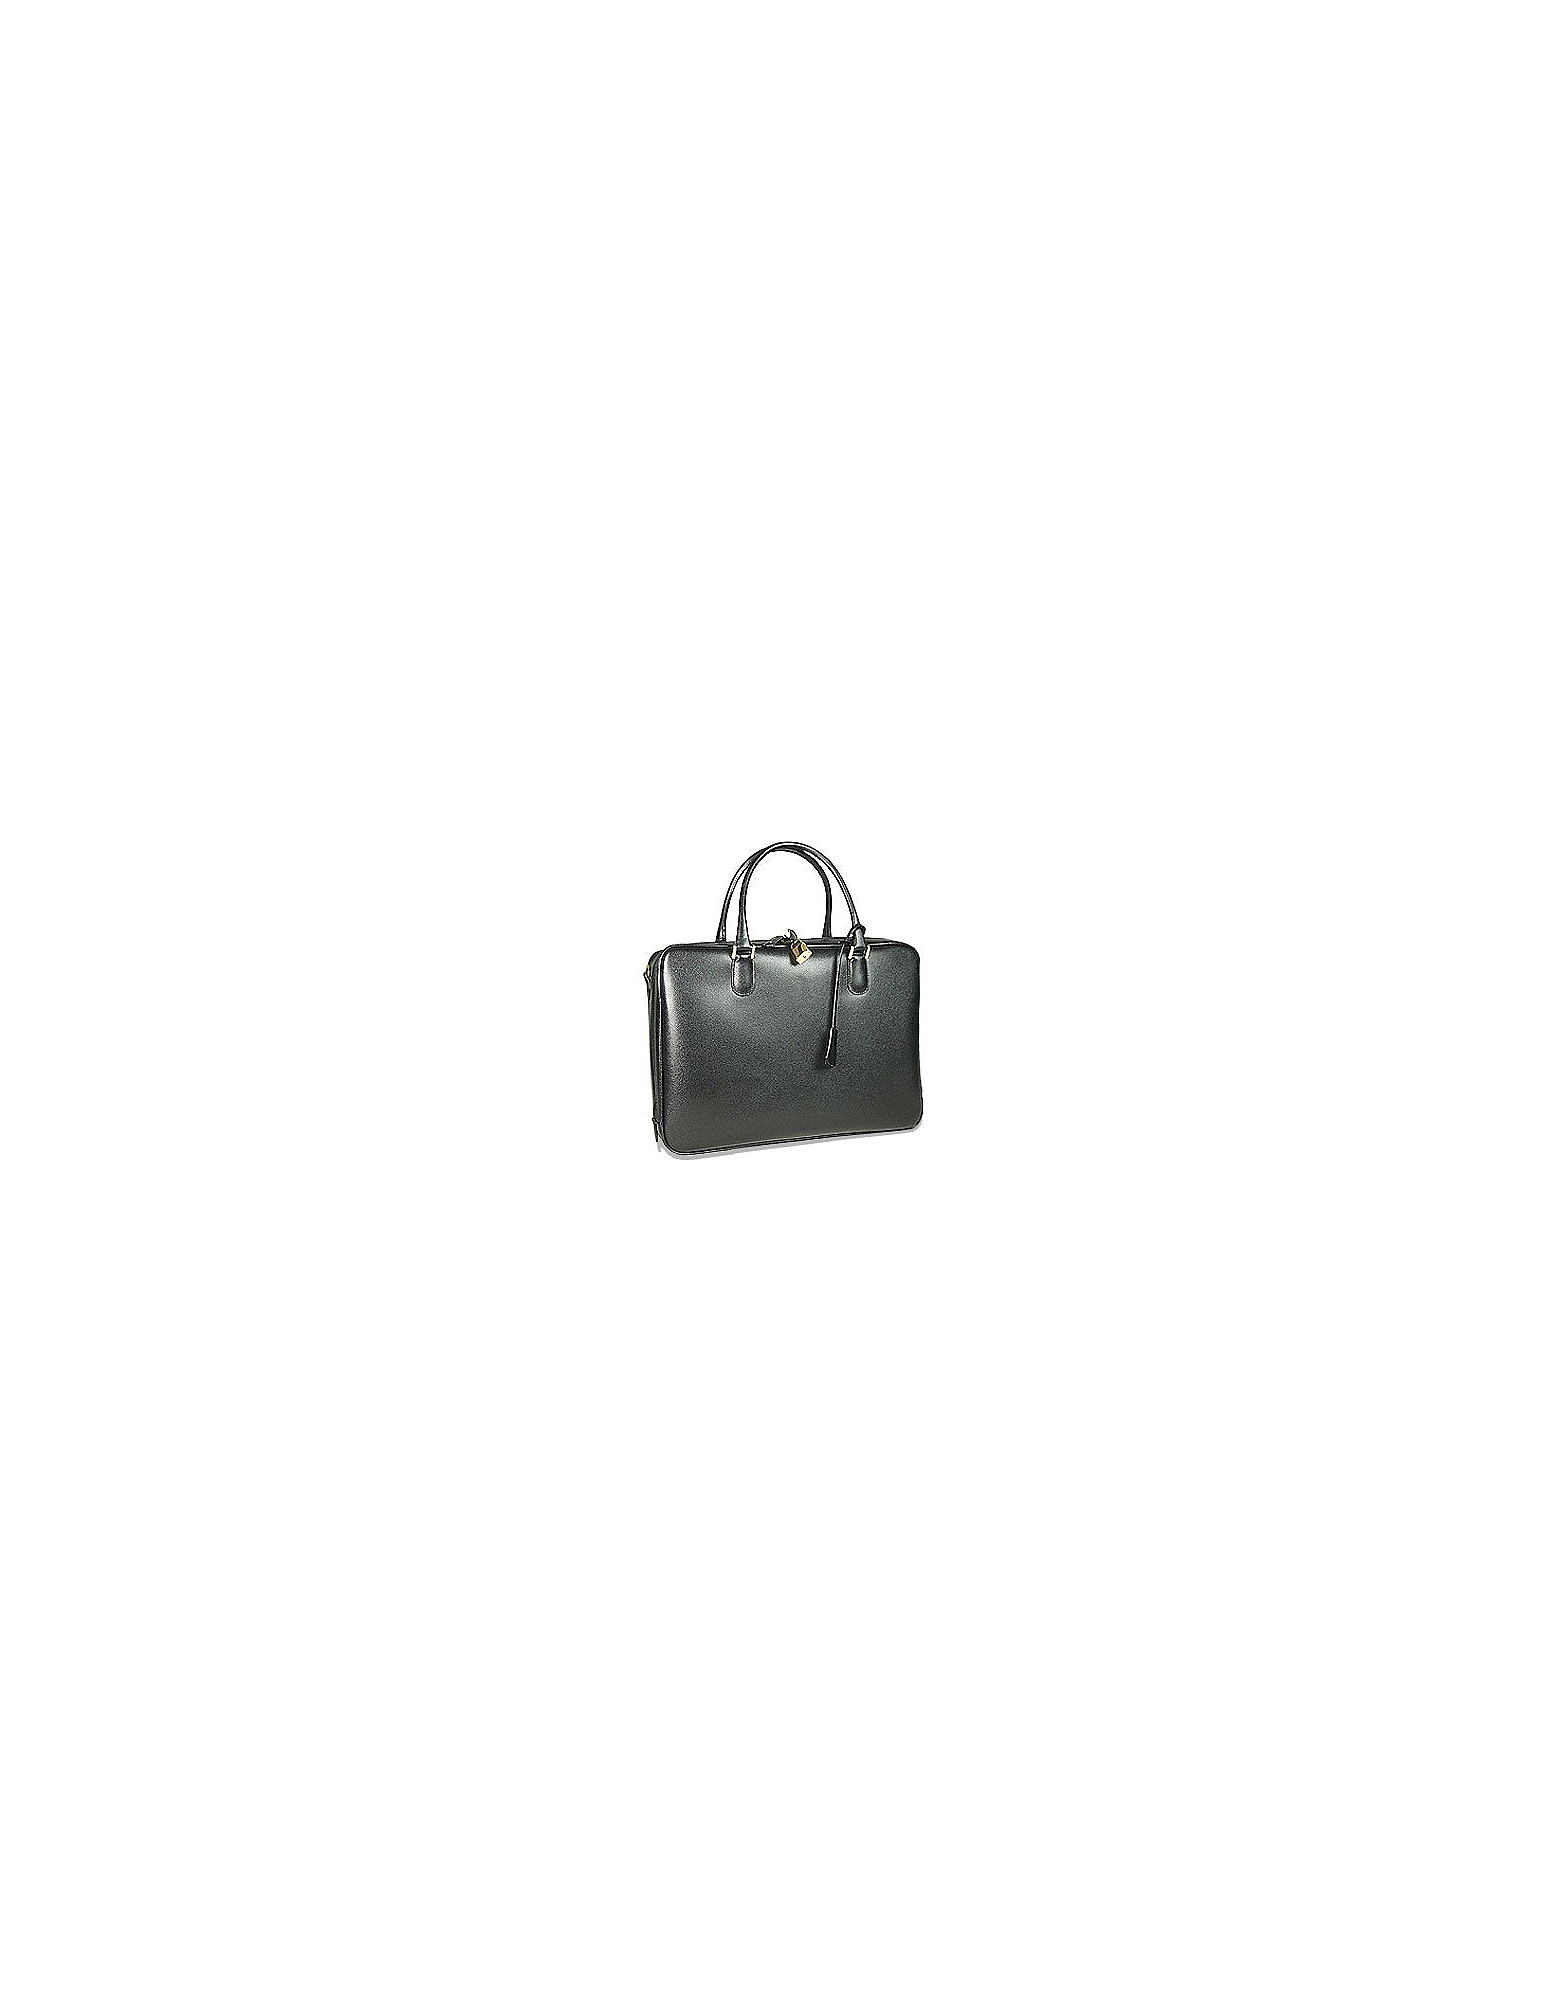 Fontanelli Designer Briefcases, Black Lizard-print Calf Leather Briefcase